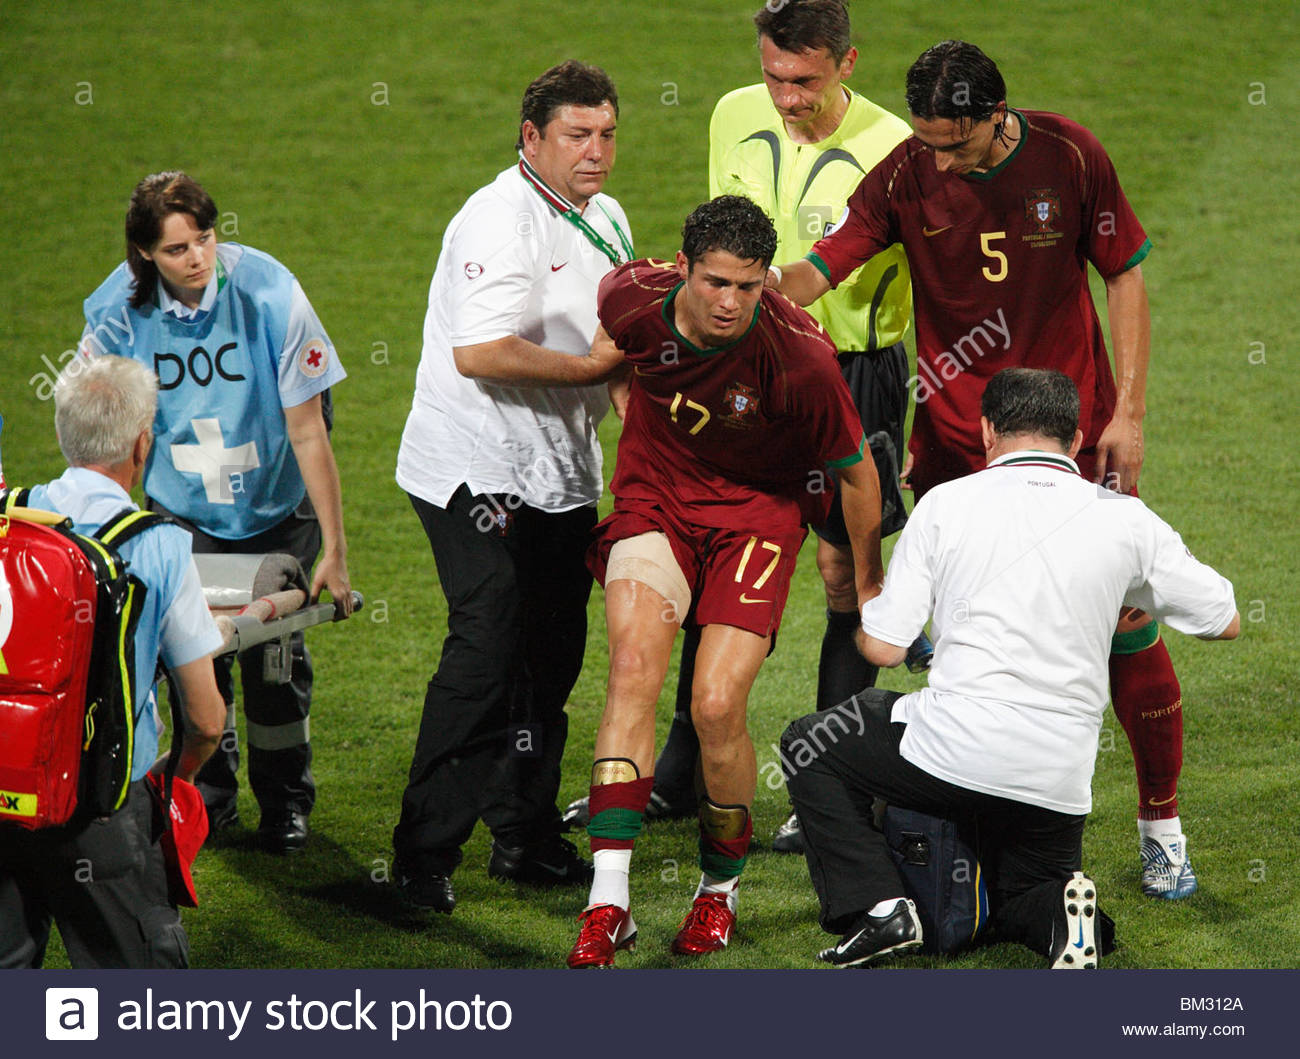 an-injured-cristiano-ronaldo-of-portugal-17-is-helped-of-the-pitch-BM312A